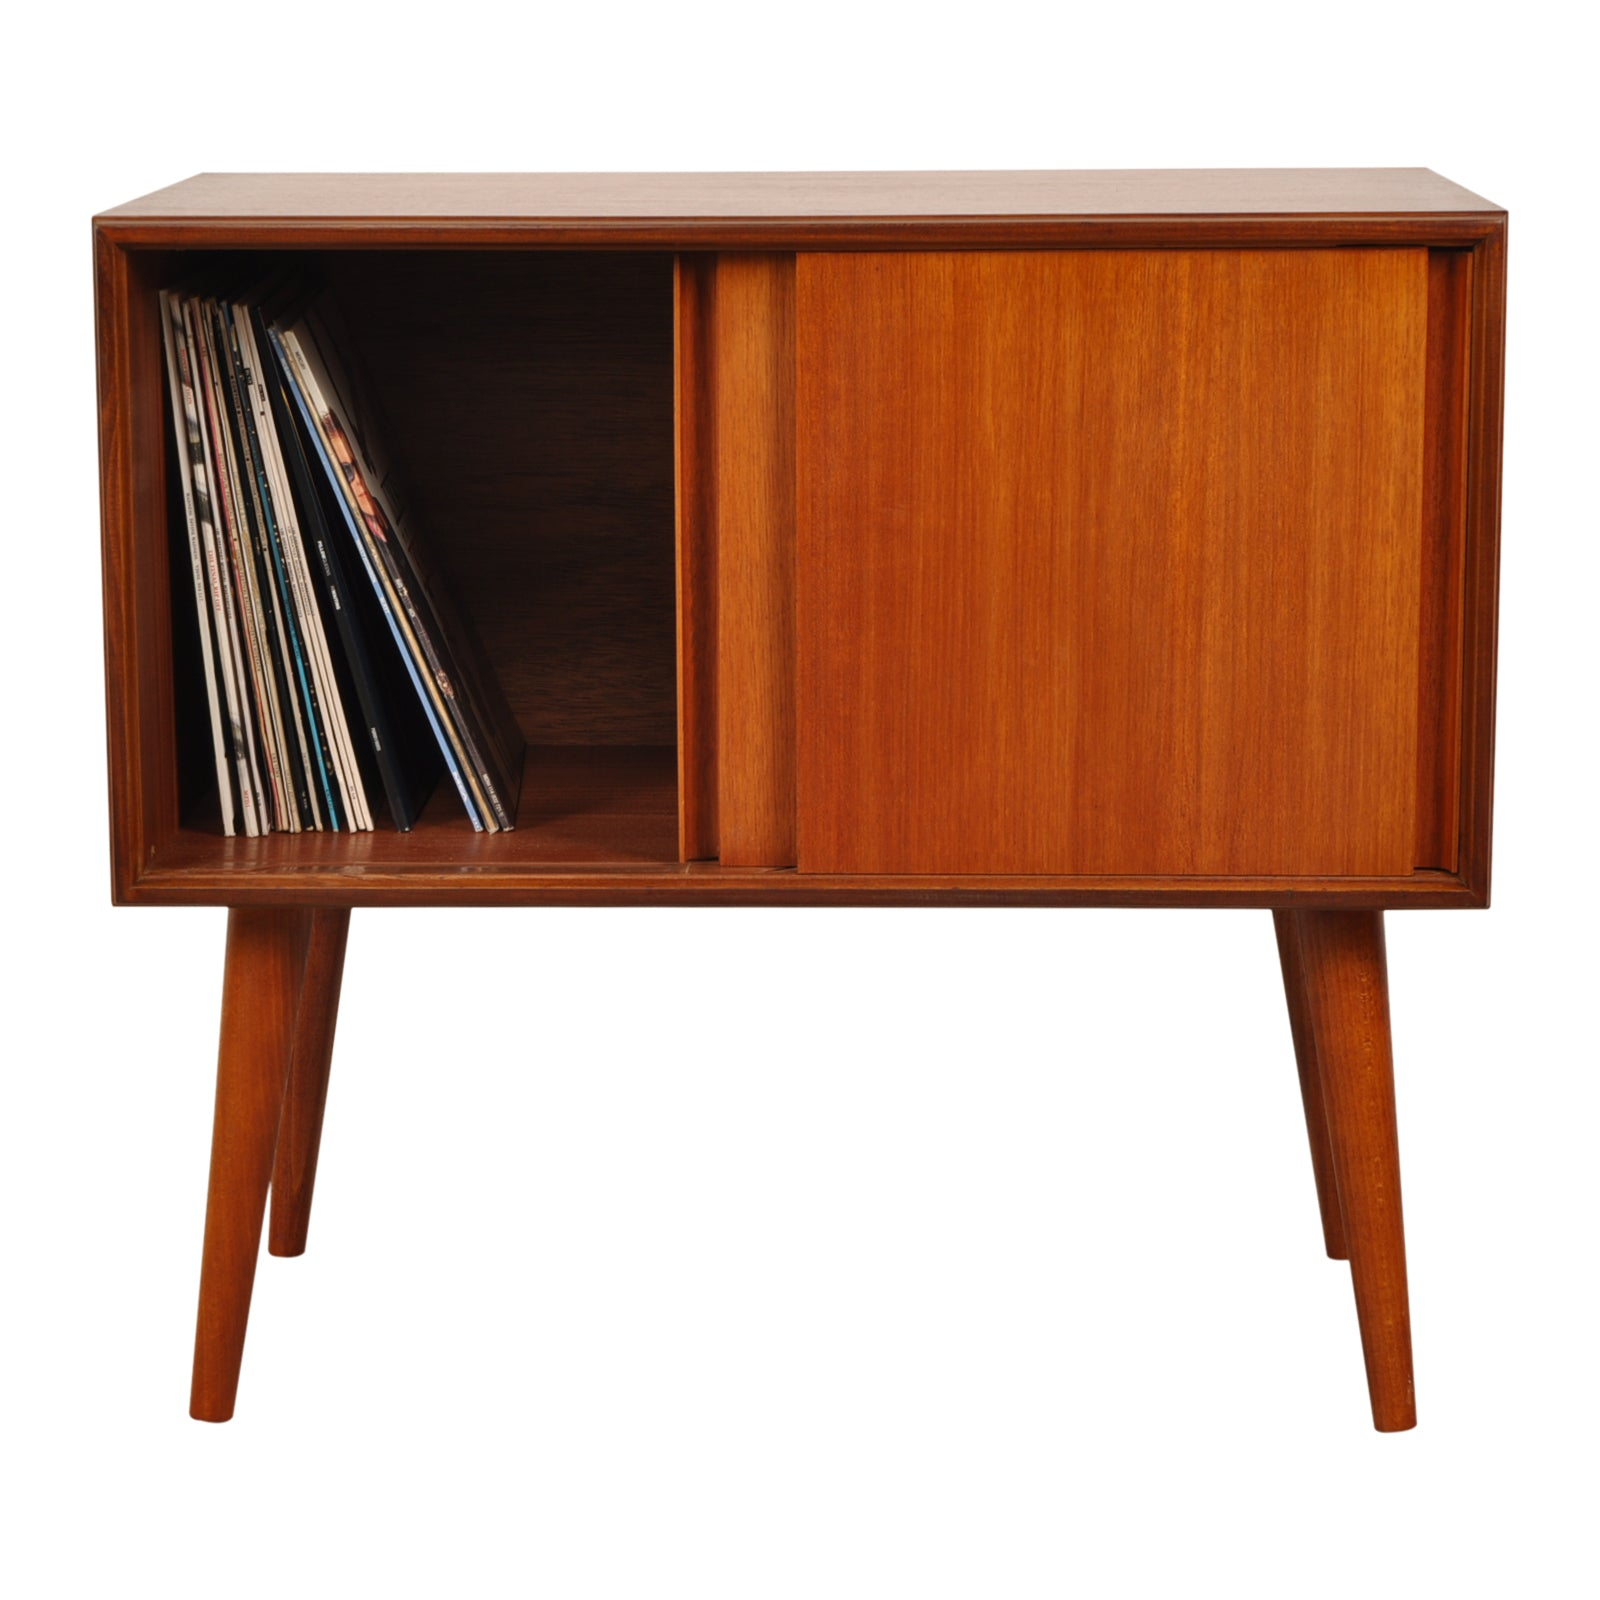 G-Plan 1960s Form Five Cabinet on tapered legs, perfect for Vinyl